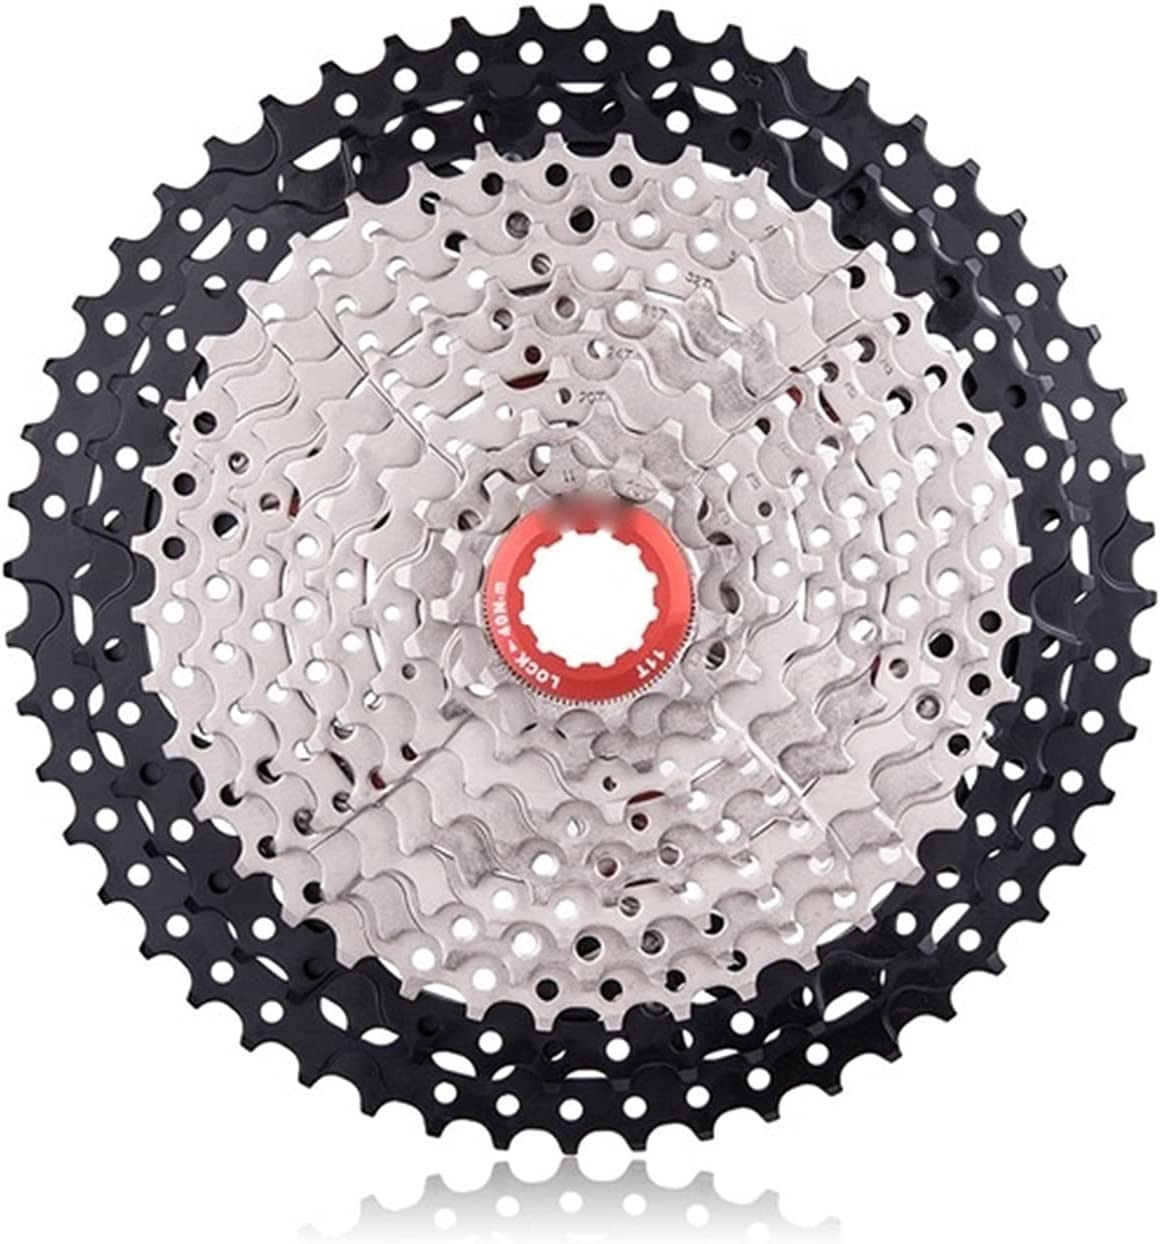 Challenge the lowest price of Japan Super-cheap Mountain Bike 11 Speed 11-52T Cassette MTB Ratio Fr 11S Wide 52T